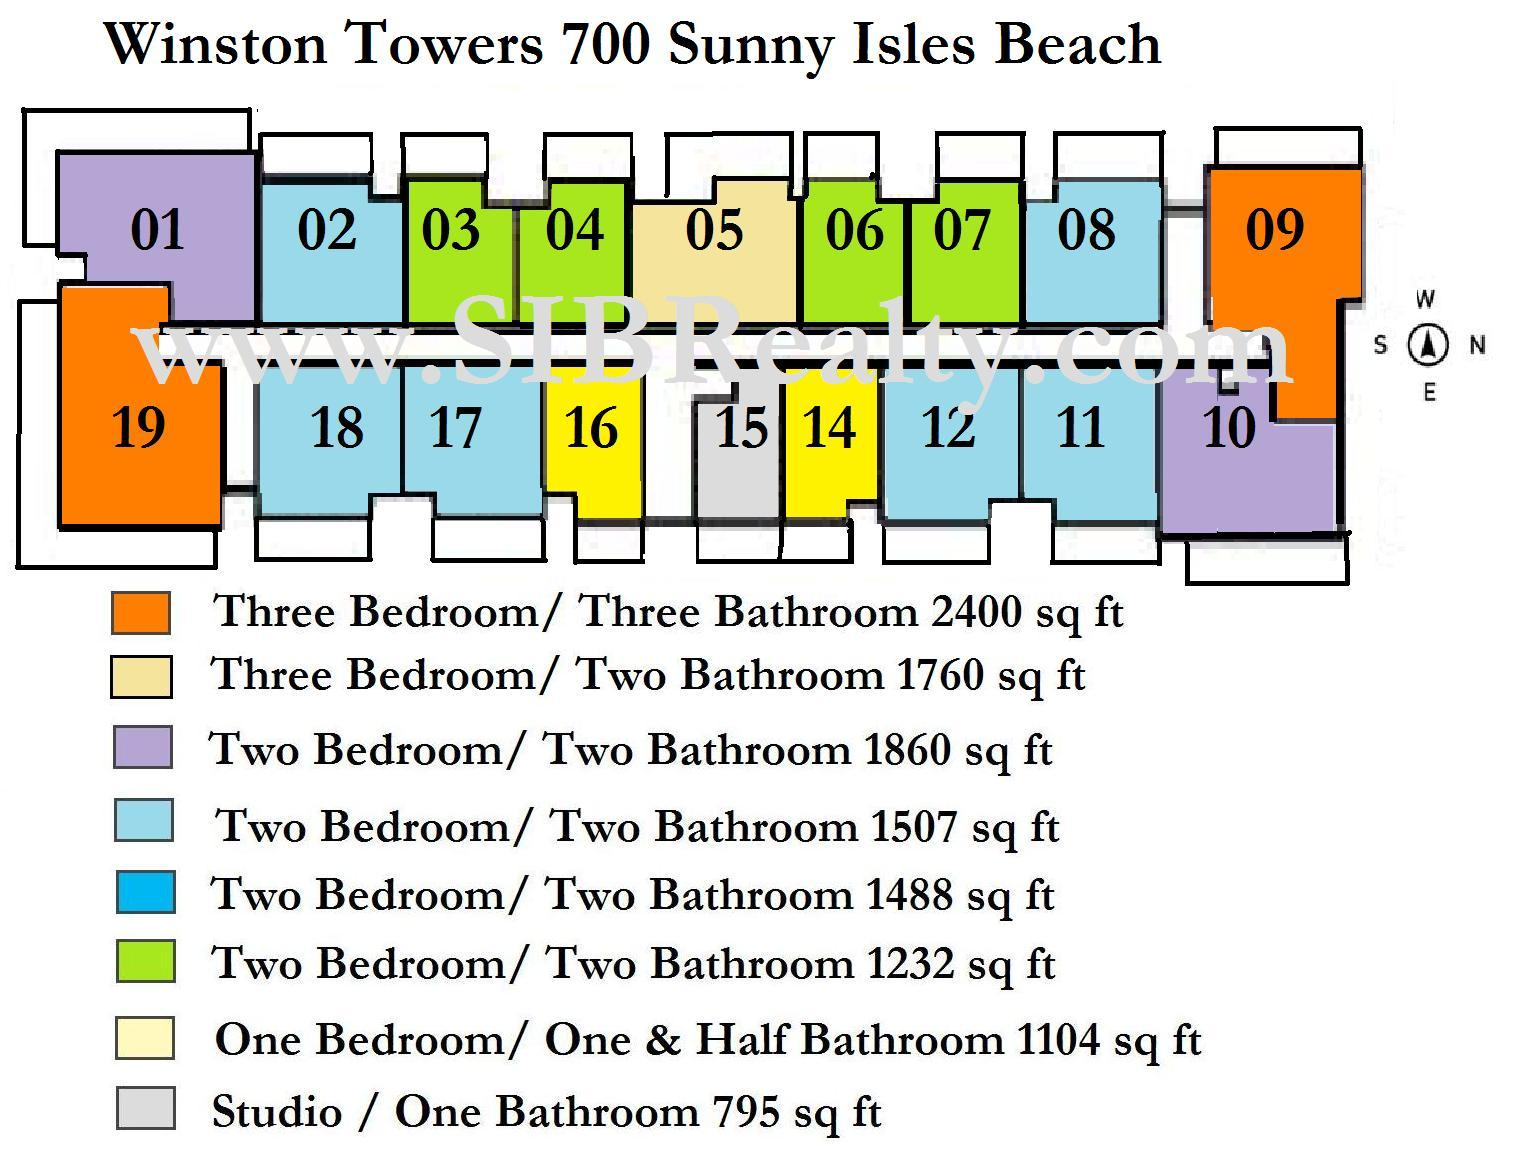 Winston Towers 700 Sunny Isles Beach Site Plan